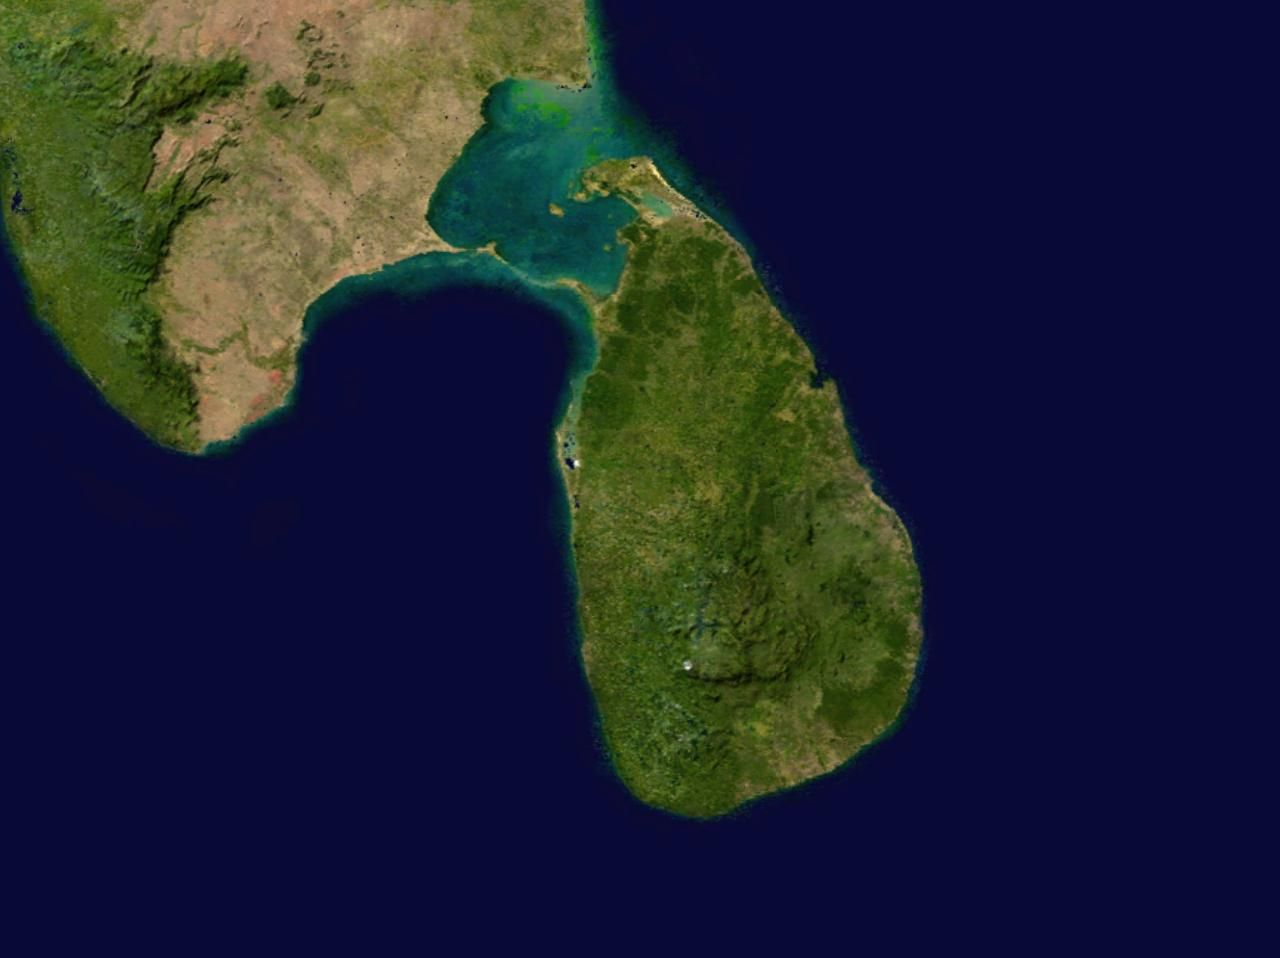 sri lanka satellite map - Google Search in 2019 | Sri lanka ... on satellite map of the vatican, satellite map of trinidad and tobago, satellite map of haiti, satellite map of cebu island, satellite map of abu dhabi, satellite map of iraq, satellite map of qatar, satellite map of kosovo, satellite map of czech republic, satellite map of mali, satellite map of brunei darussalam, satellite map of united states of america, satellite map of vatican city, satellite map of saipan, satellite map of tunisia, satellite map of iceland, satellite map of quezon city, satellite map of somalia, satellite map of caribbean islands, satellite map of eastern europe,